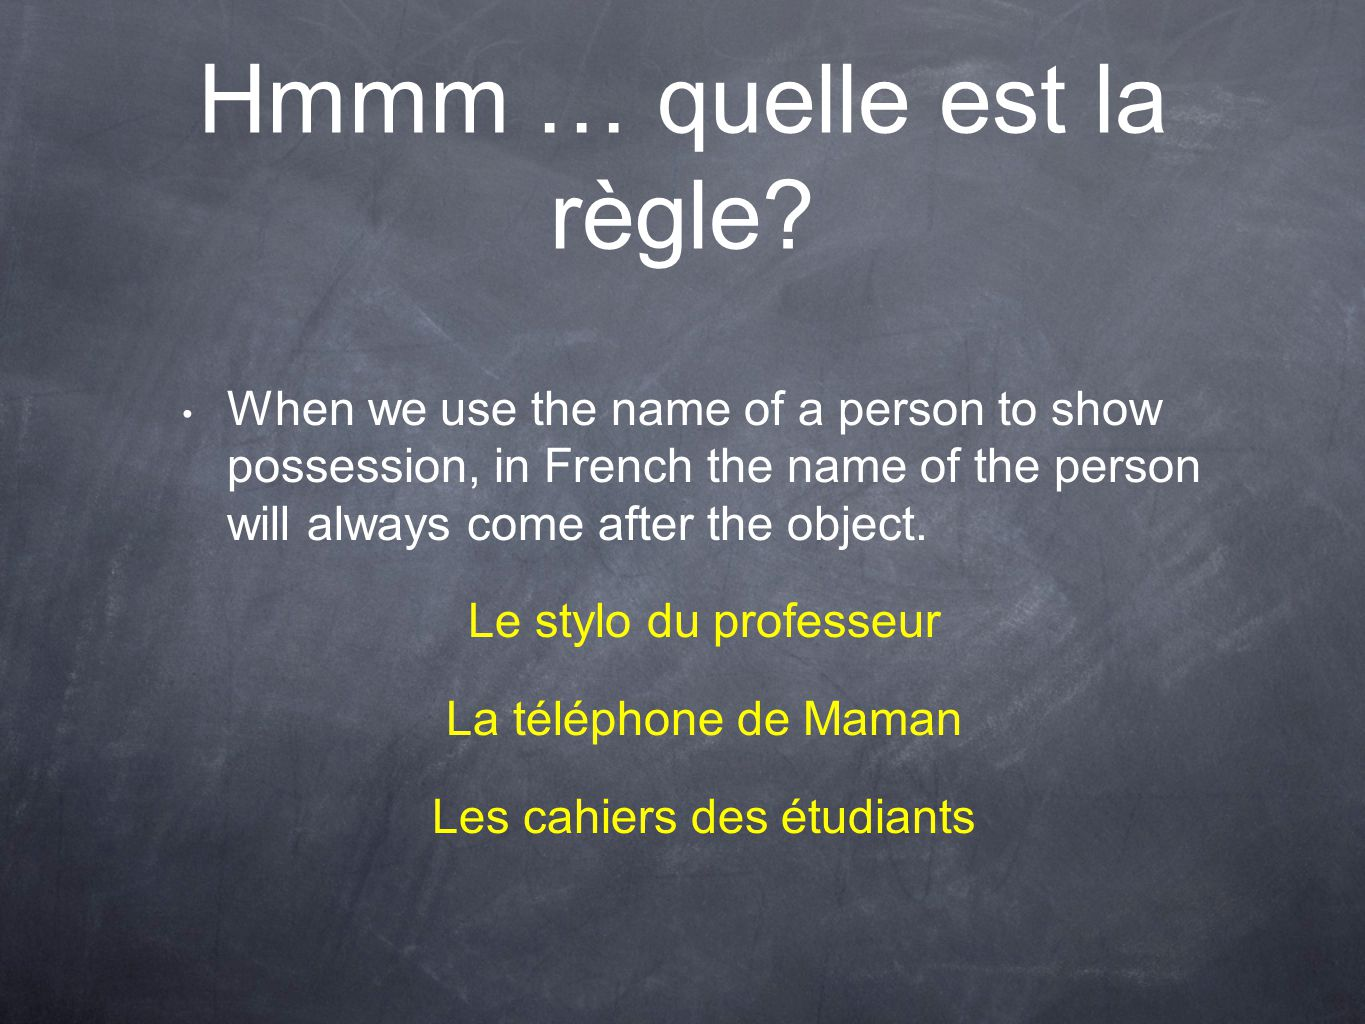 Hmmm … quelle est la règle? When we use the name of a person to show possession, in French the name of the person will always come after the object. L